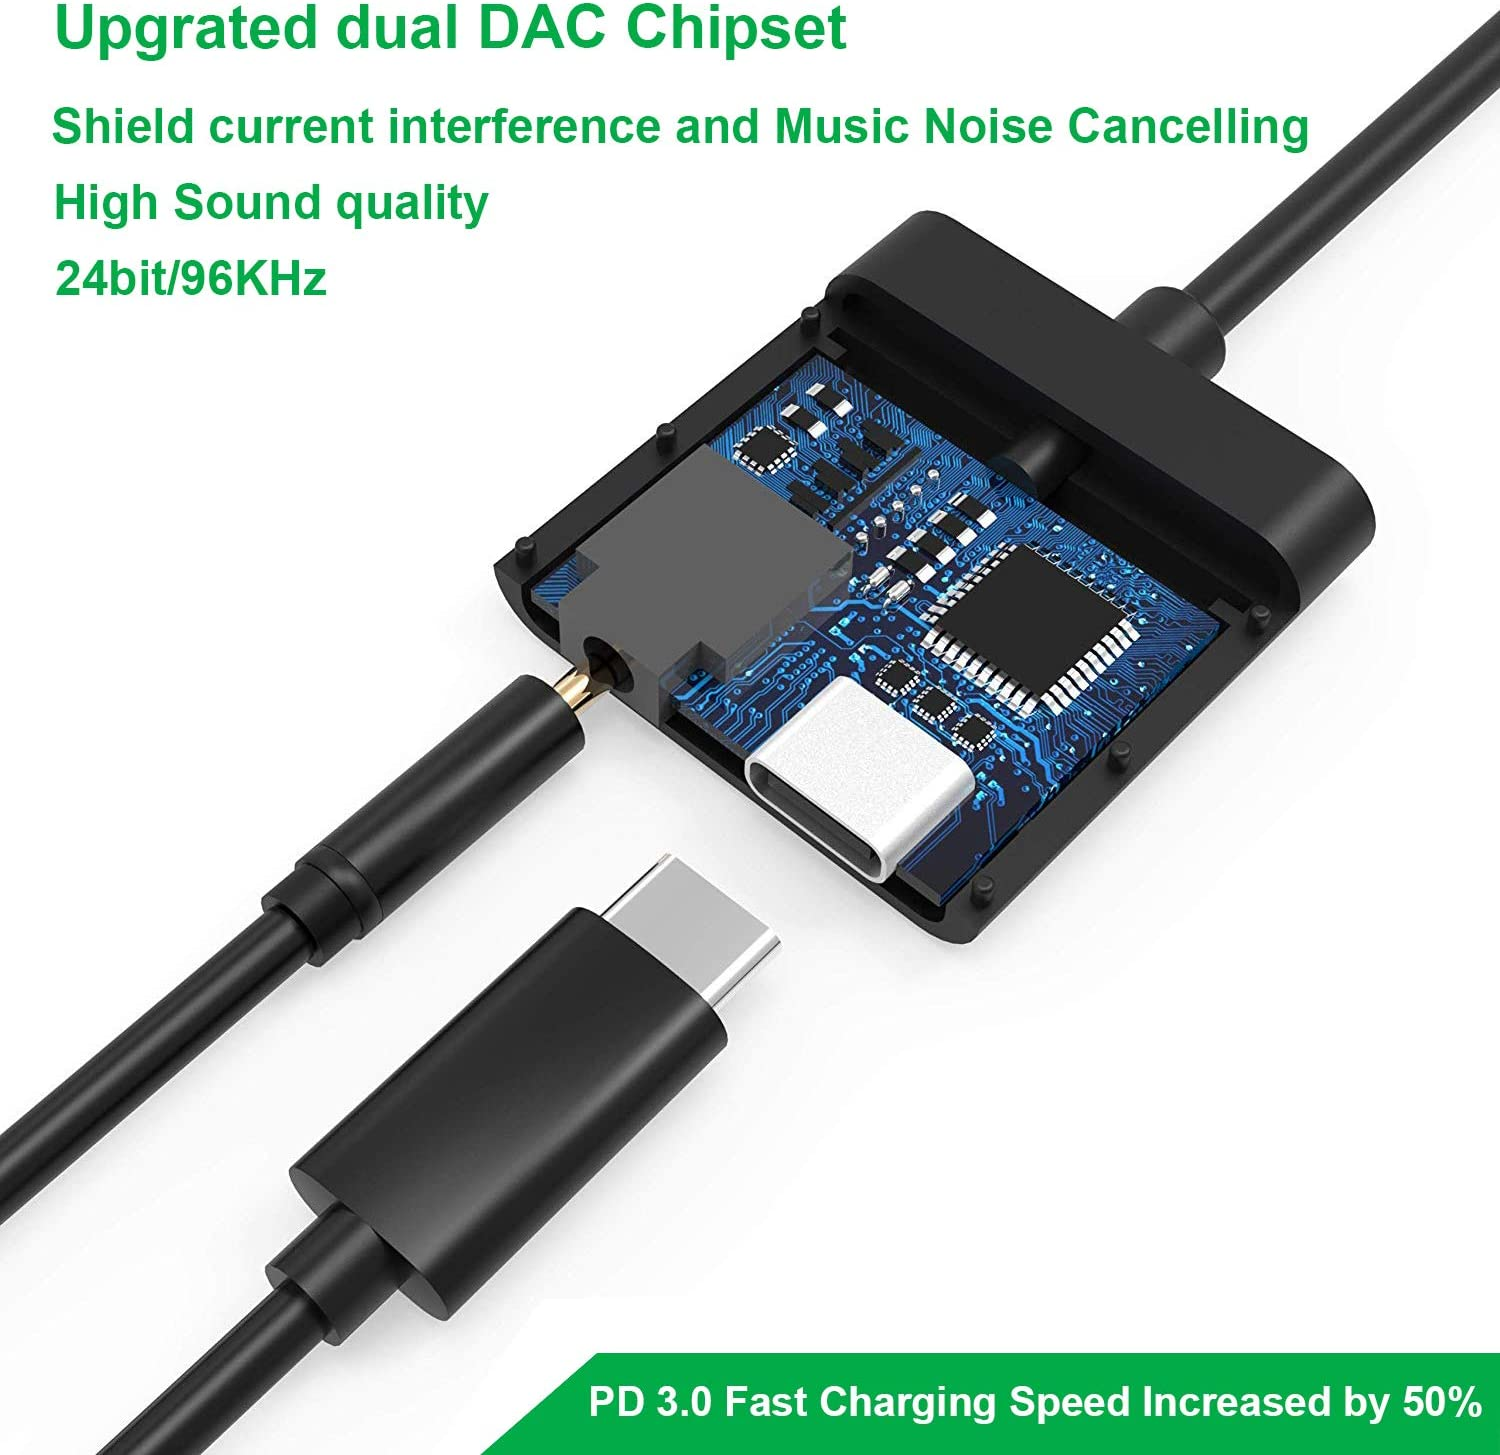 ZJSM 2 in 1 Type C to 3.5mm Aux Extension Cable PD Fast Charging for Pixel 3//2//XL Essential Phone and More-Support DAC and Hi-Res Audio USB C to 3.5mm Headphone Jack Adapter HTC U11//U12 Silver